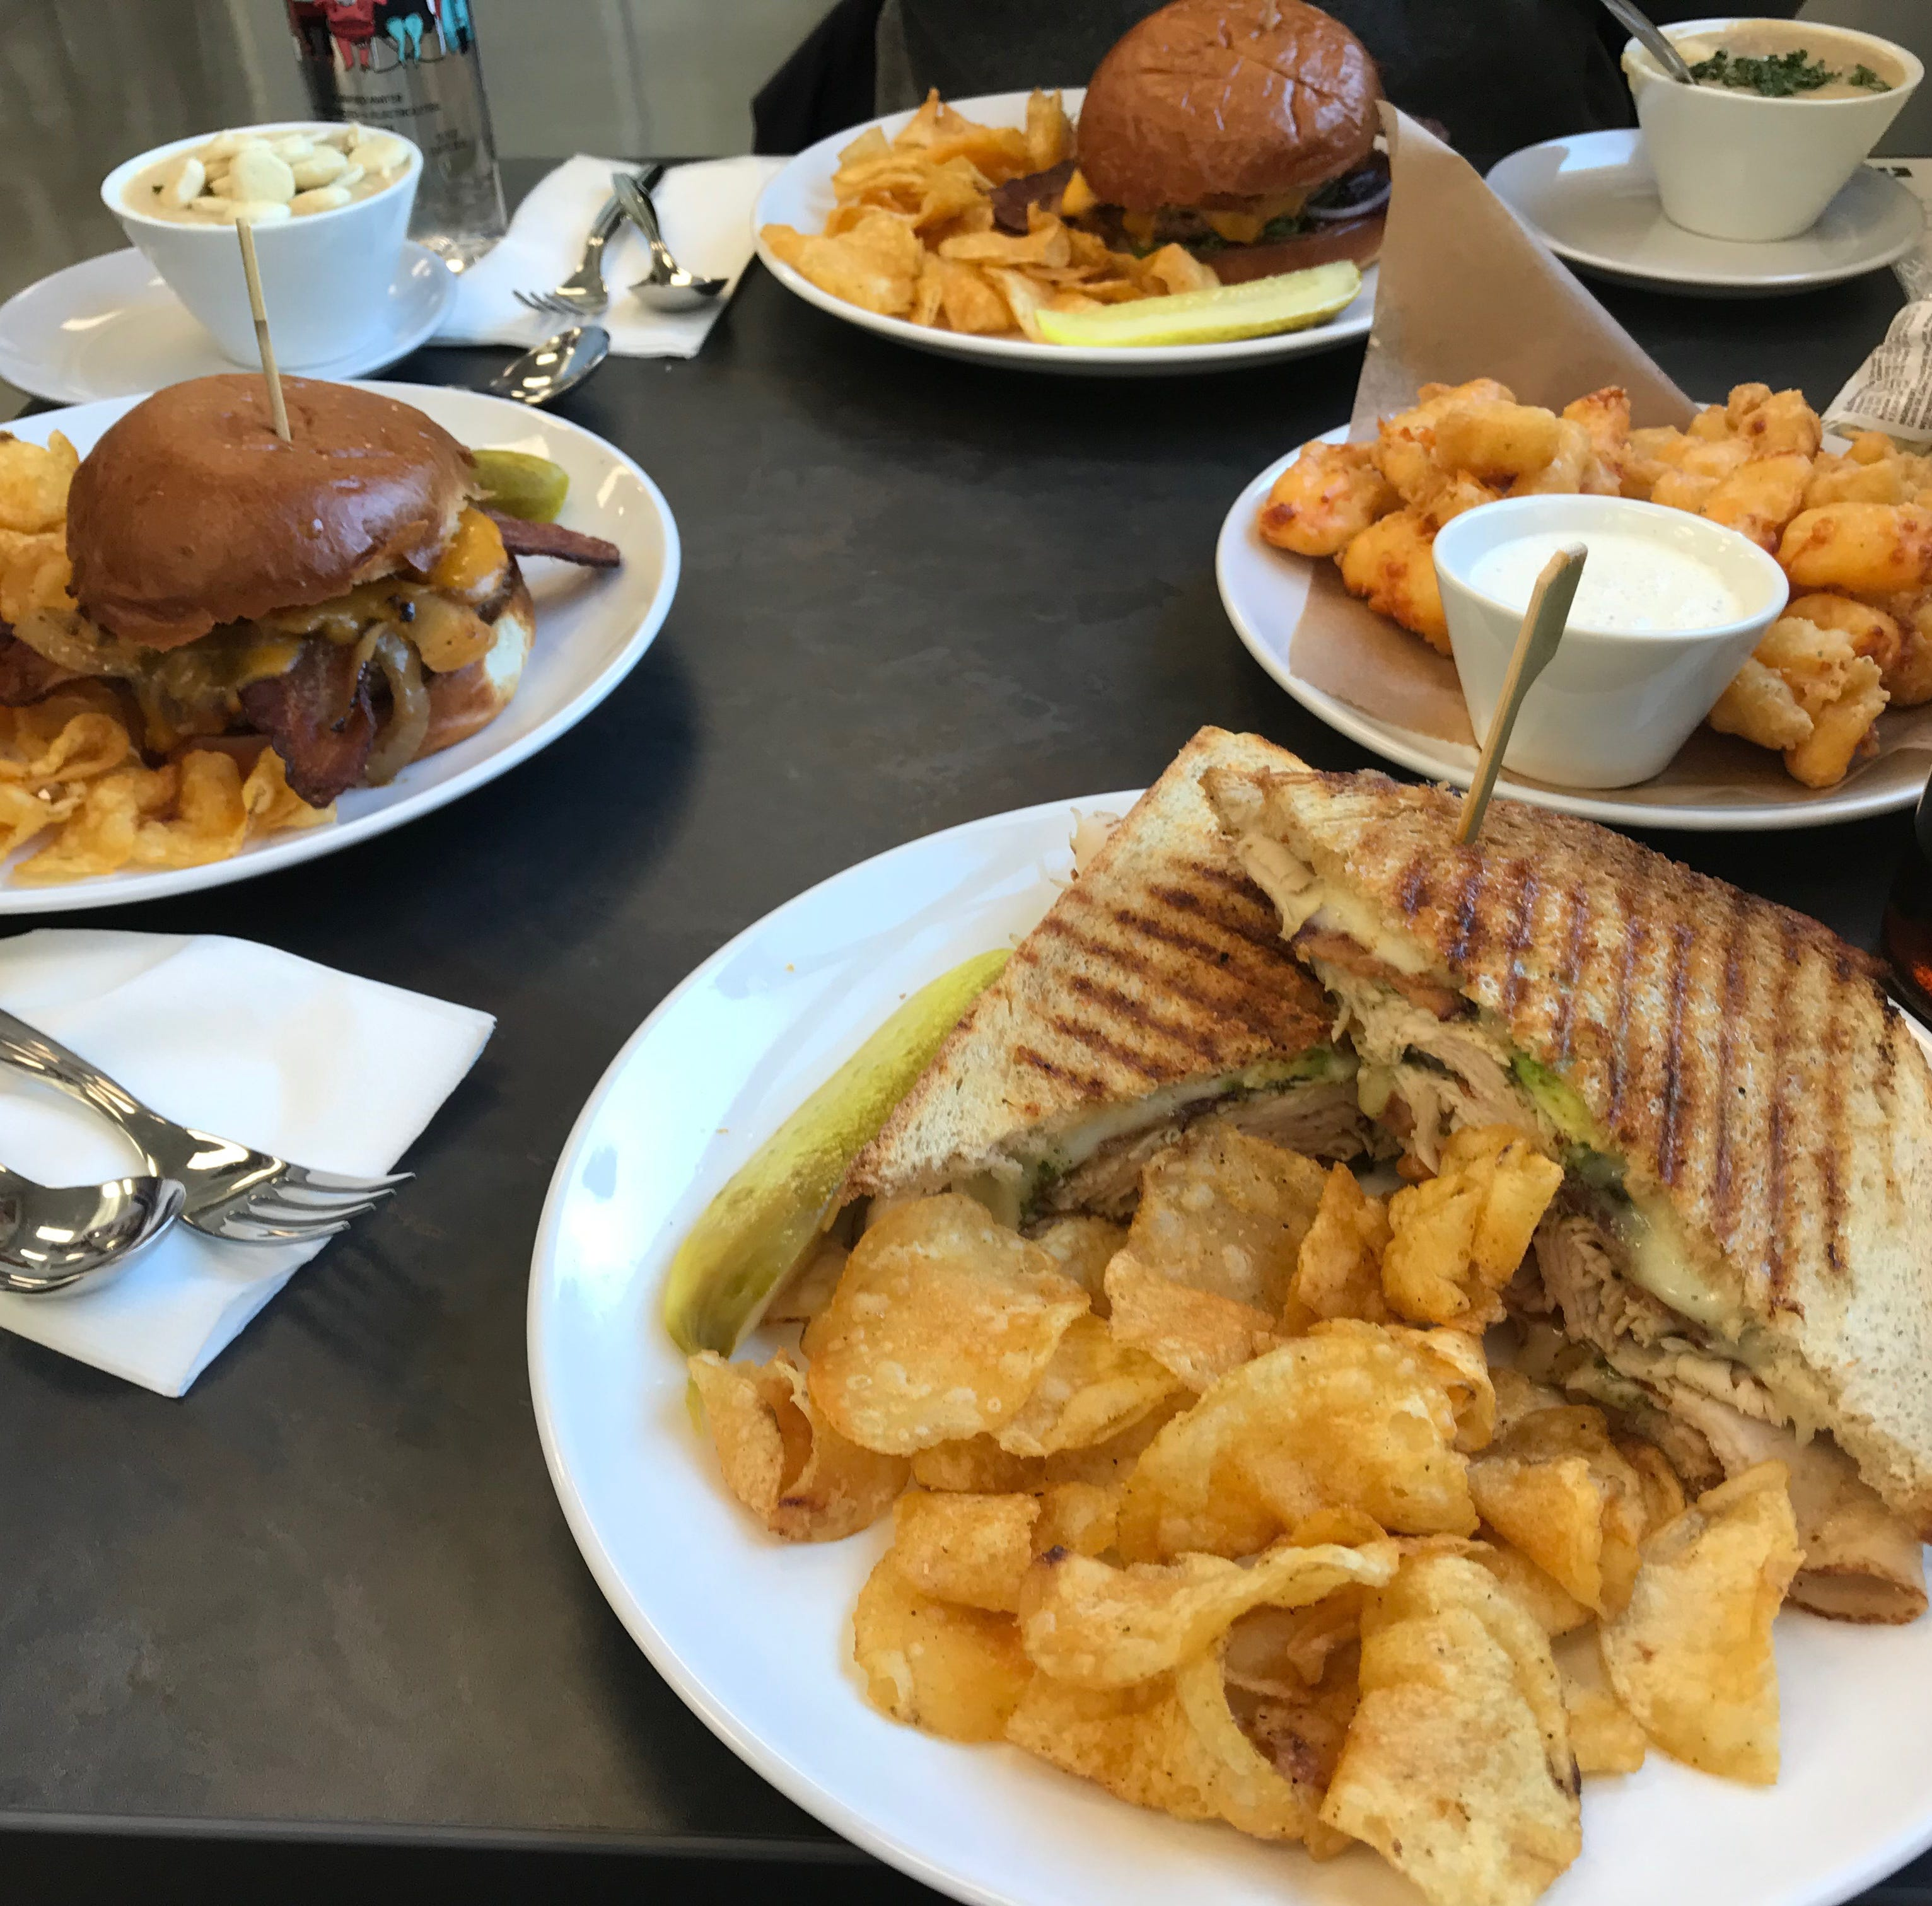 Manitowoc Farm Wisconsin Discovery Center café has burgers, cheese curd goodness | Savor